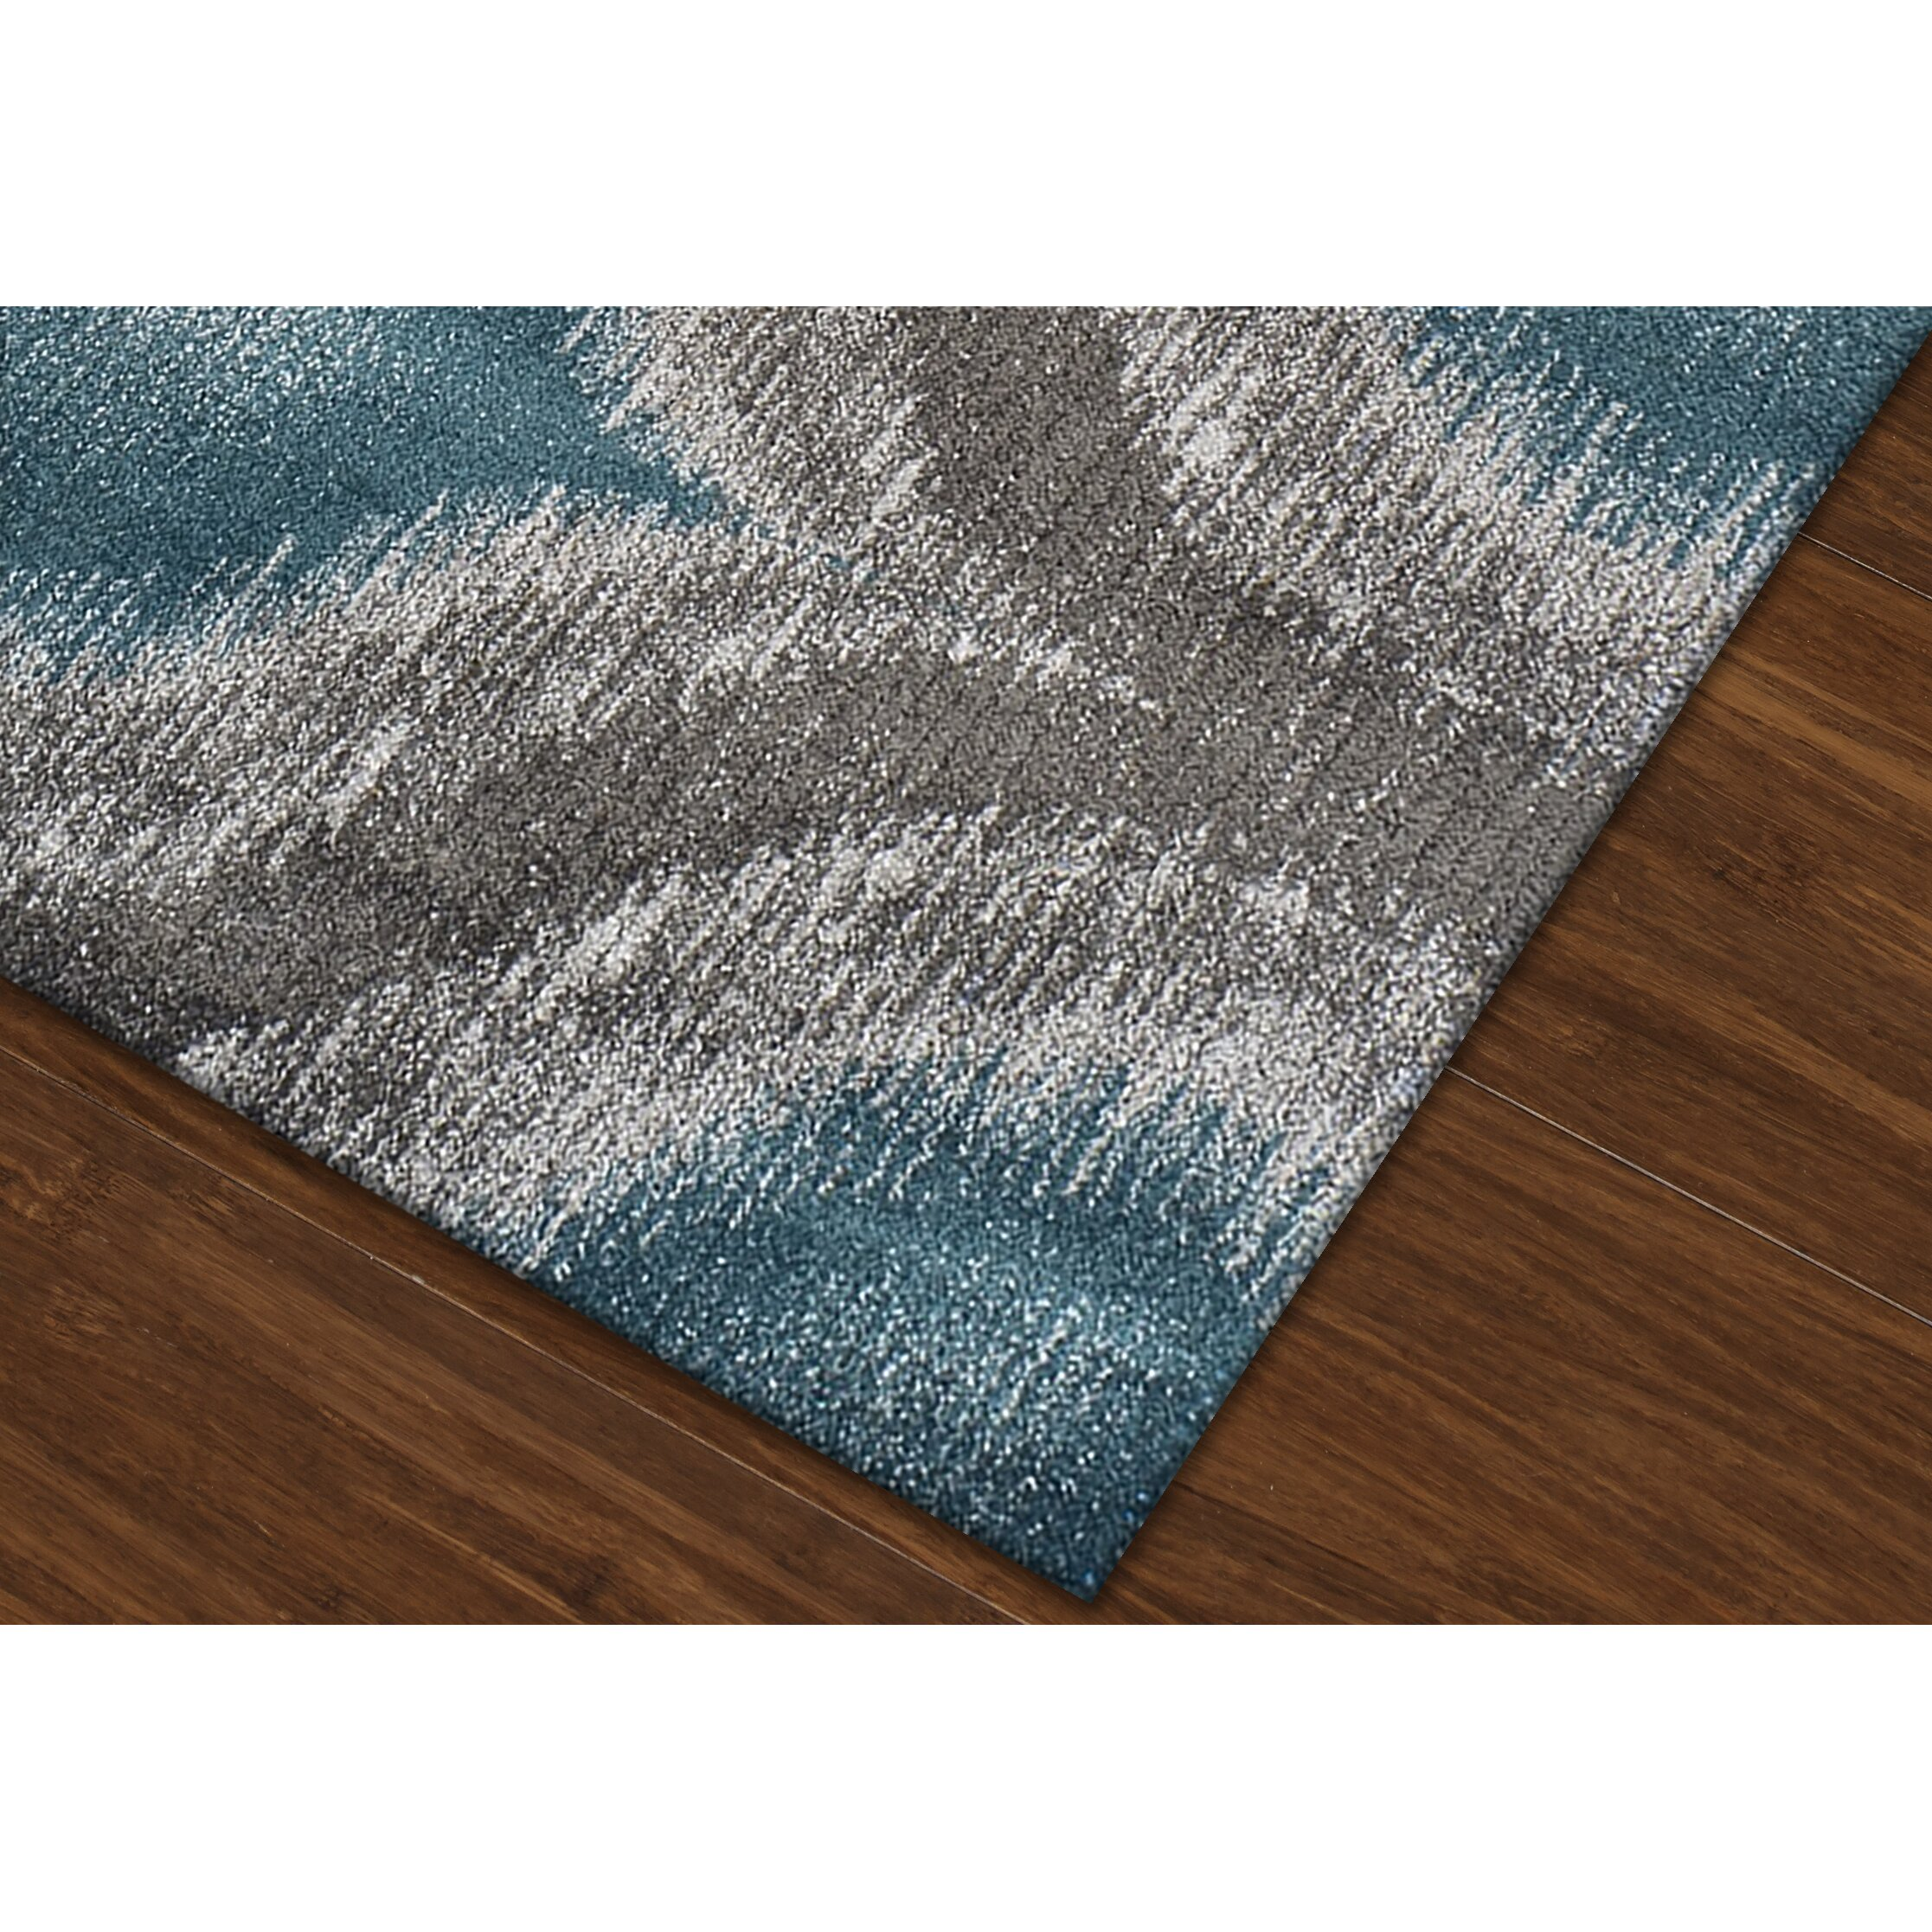 Dalyn Rug Co. Modern Greys Dalyn Teal Area Rug & Reviews